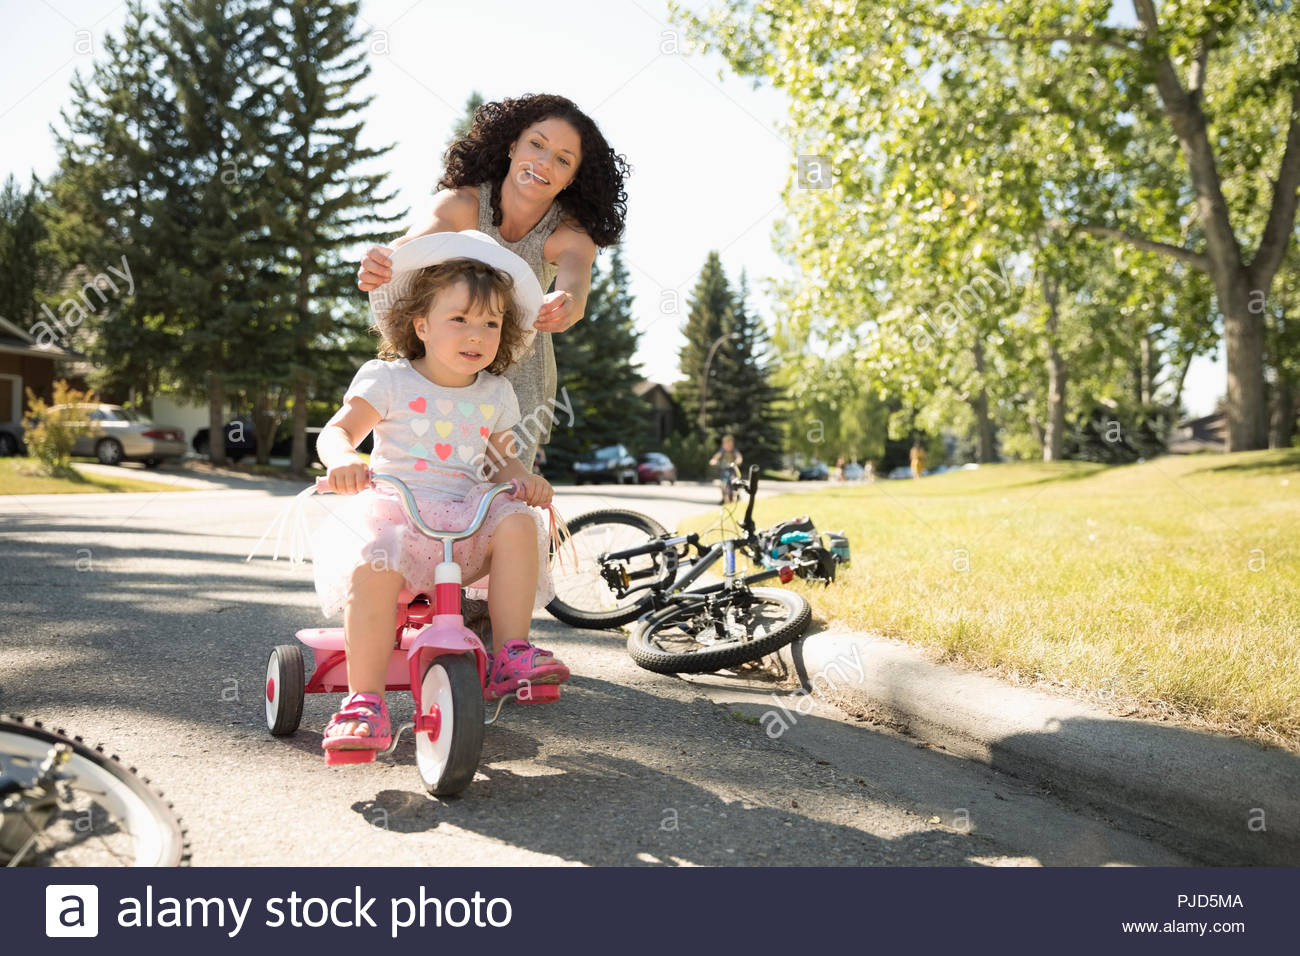 67b9fc6e500 Mother with toddler daughter on bicycle on sunny summer street - Stock Image